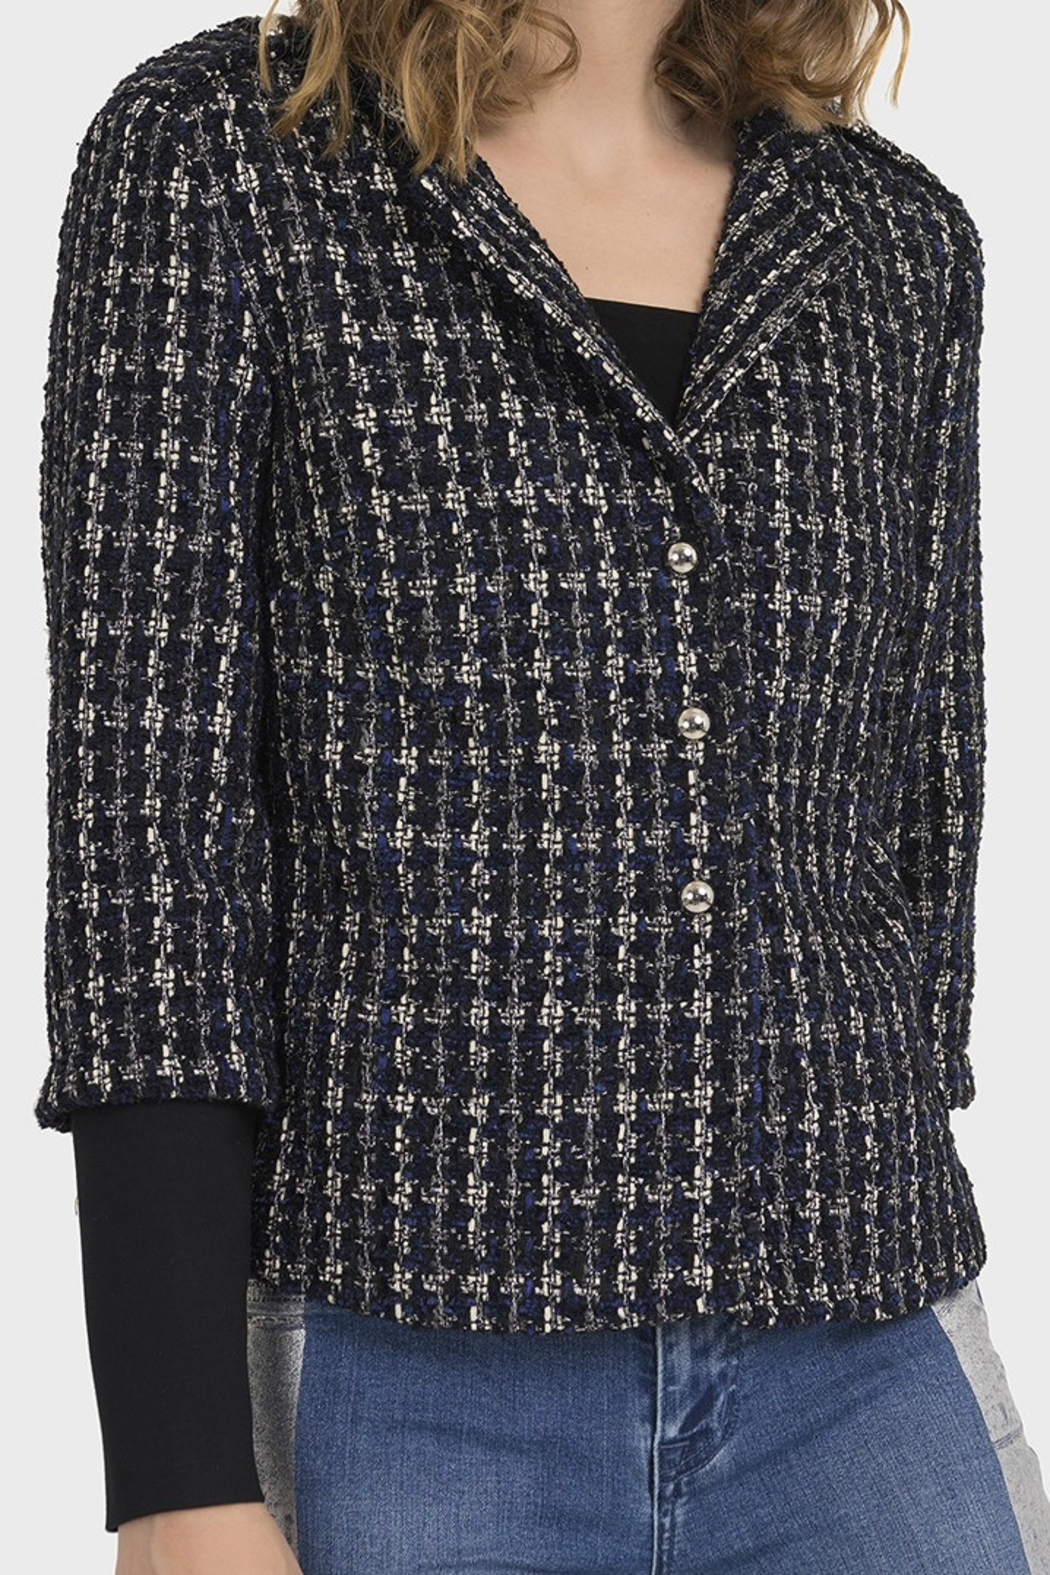 Joseph Ribkoff PLAID BOUCLE JACKET - Main Image